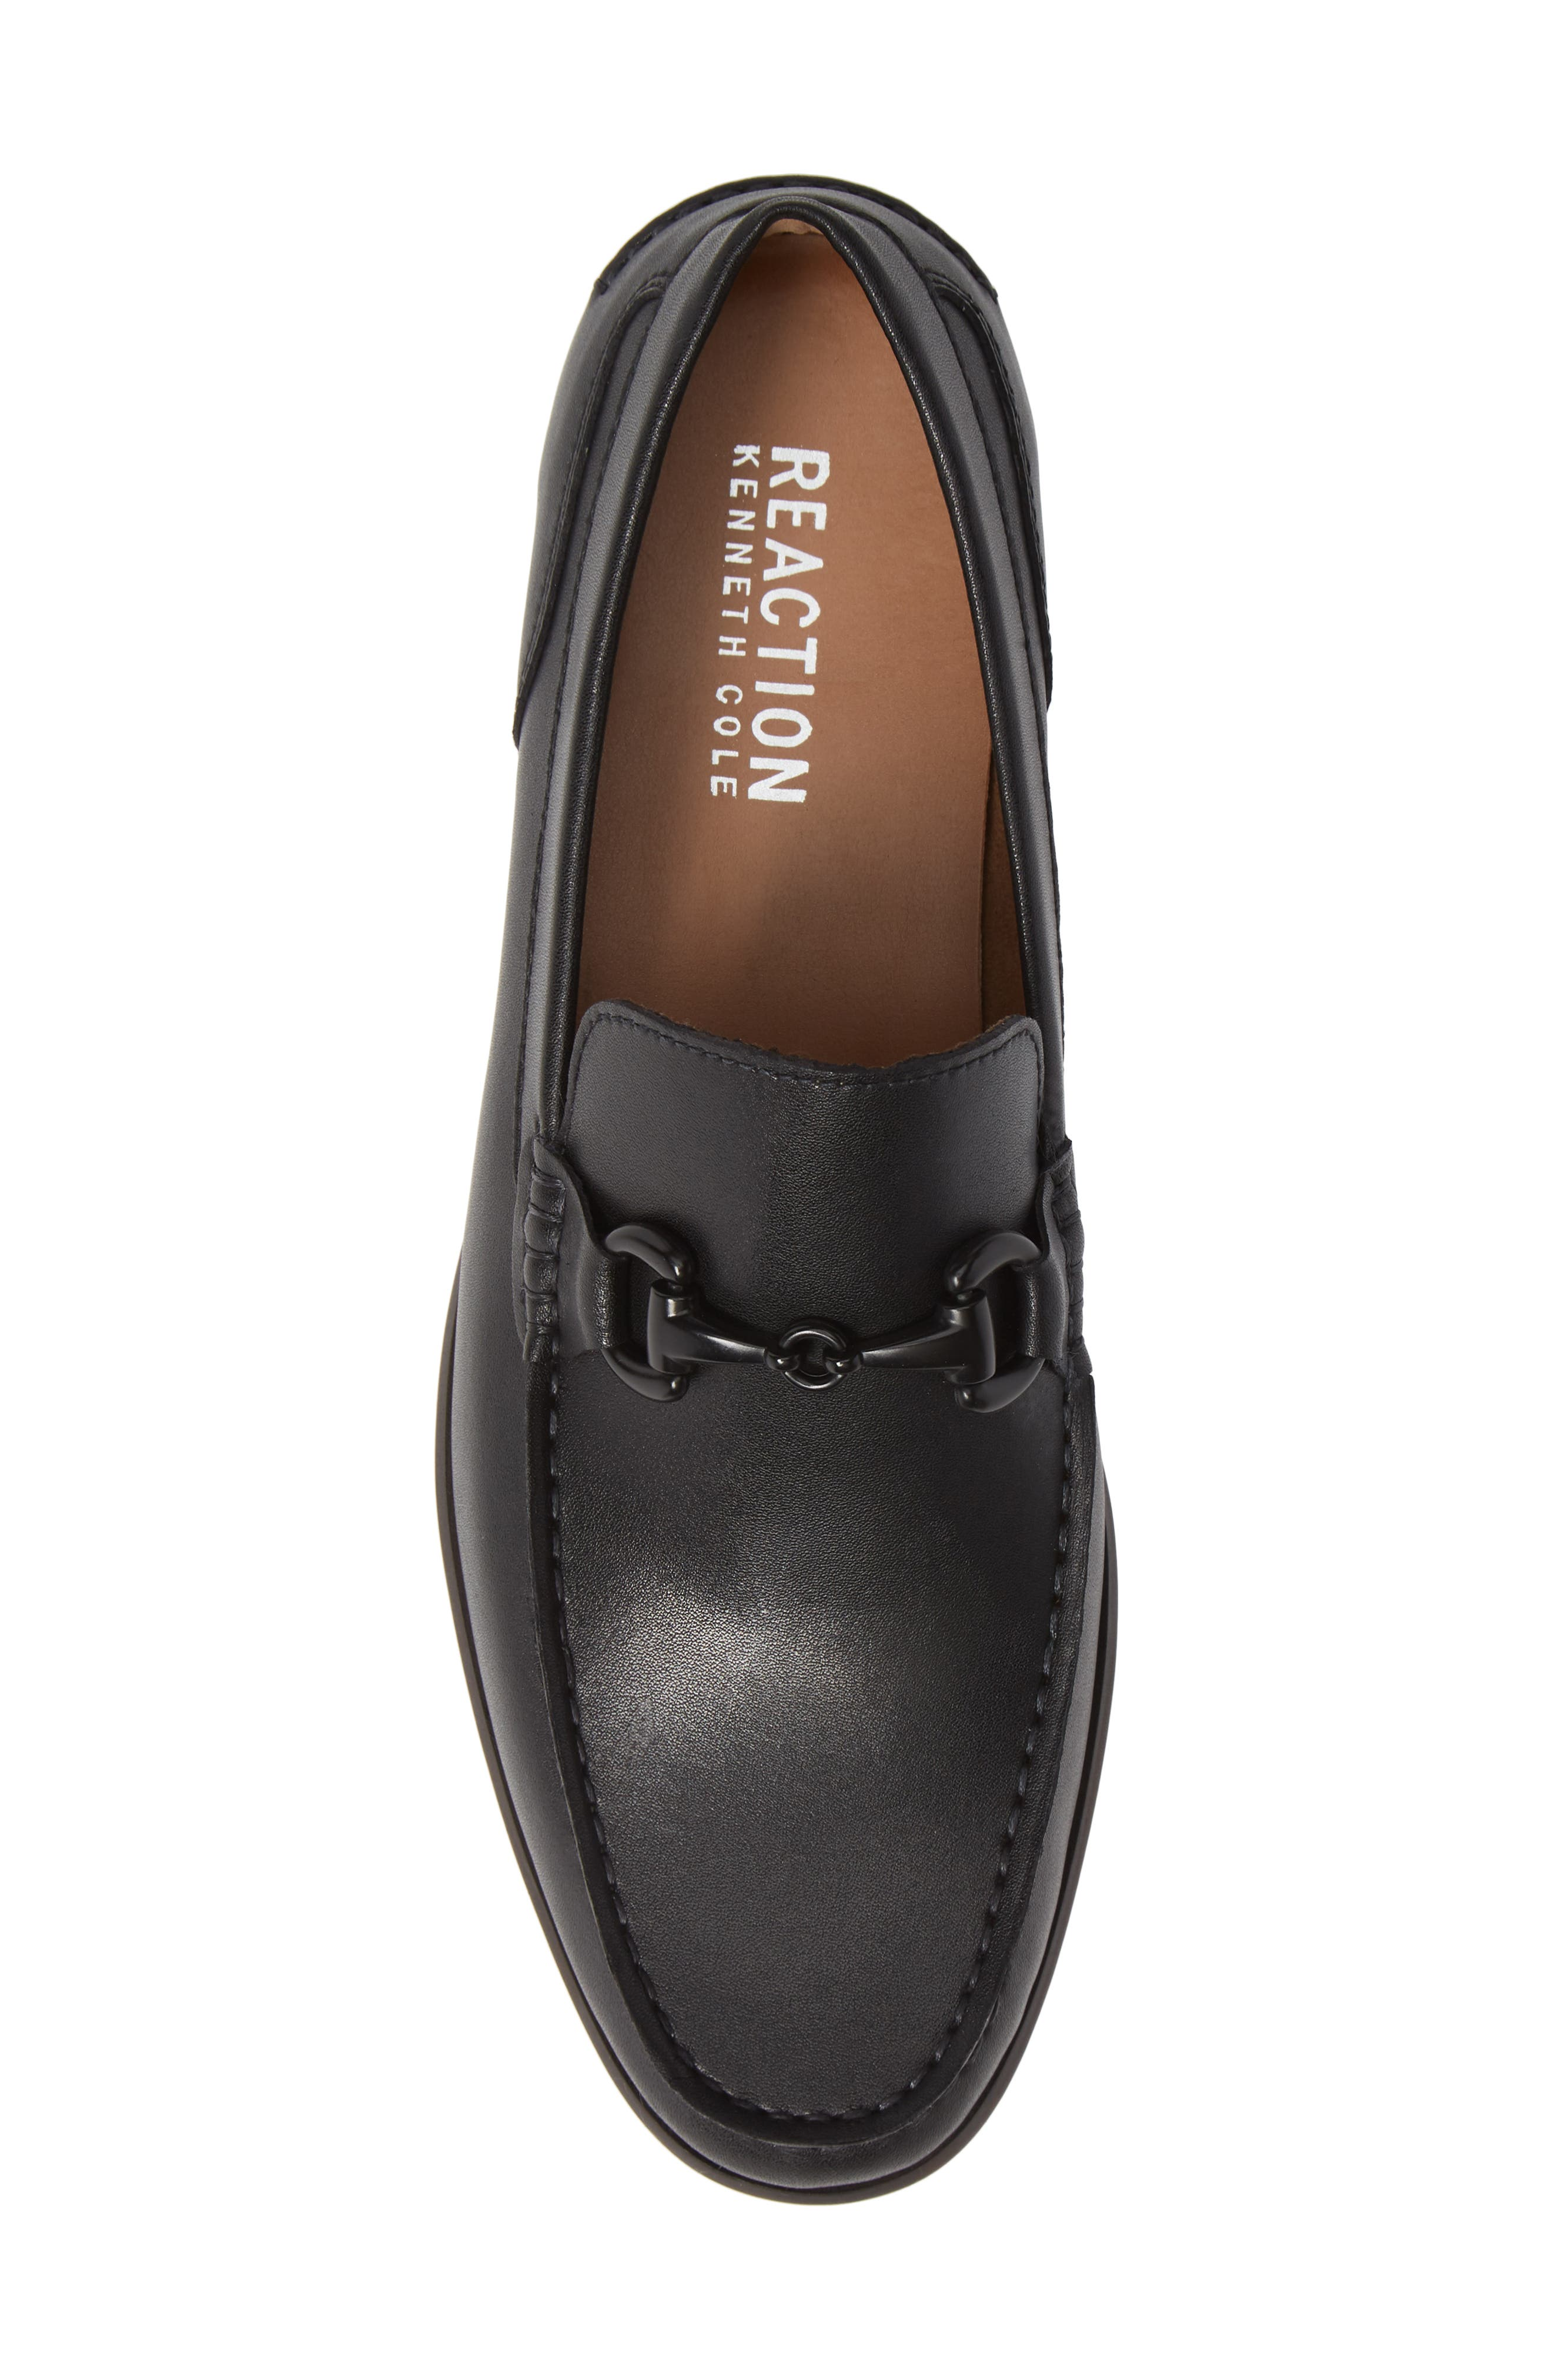 Crespo Loafer,                             Alternate thumbnail 5, color,                             BLACK SYNTHETIC LEATHER